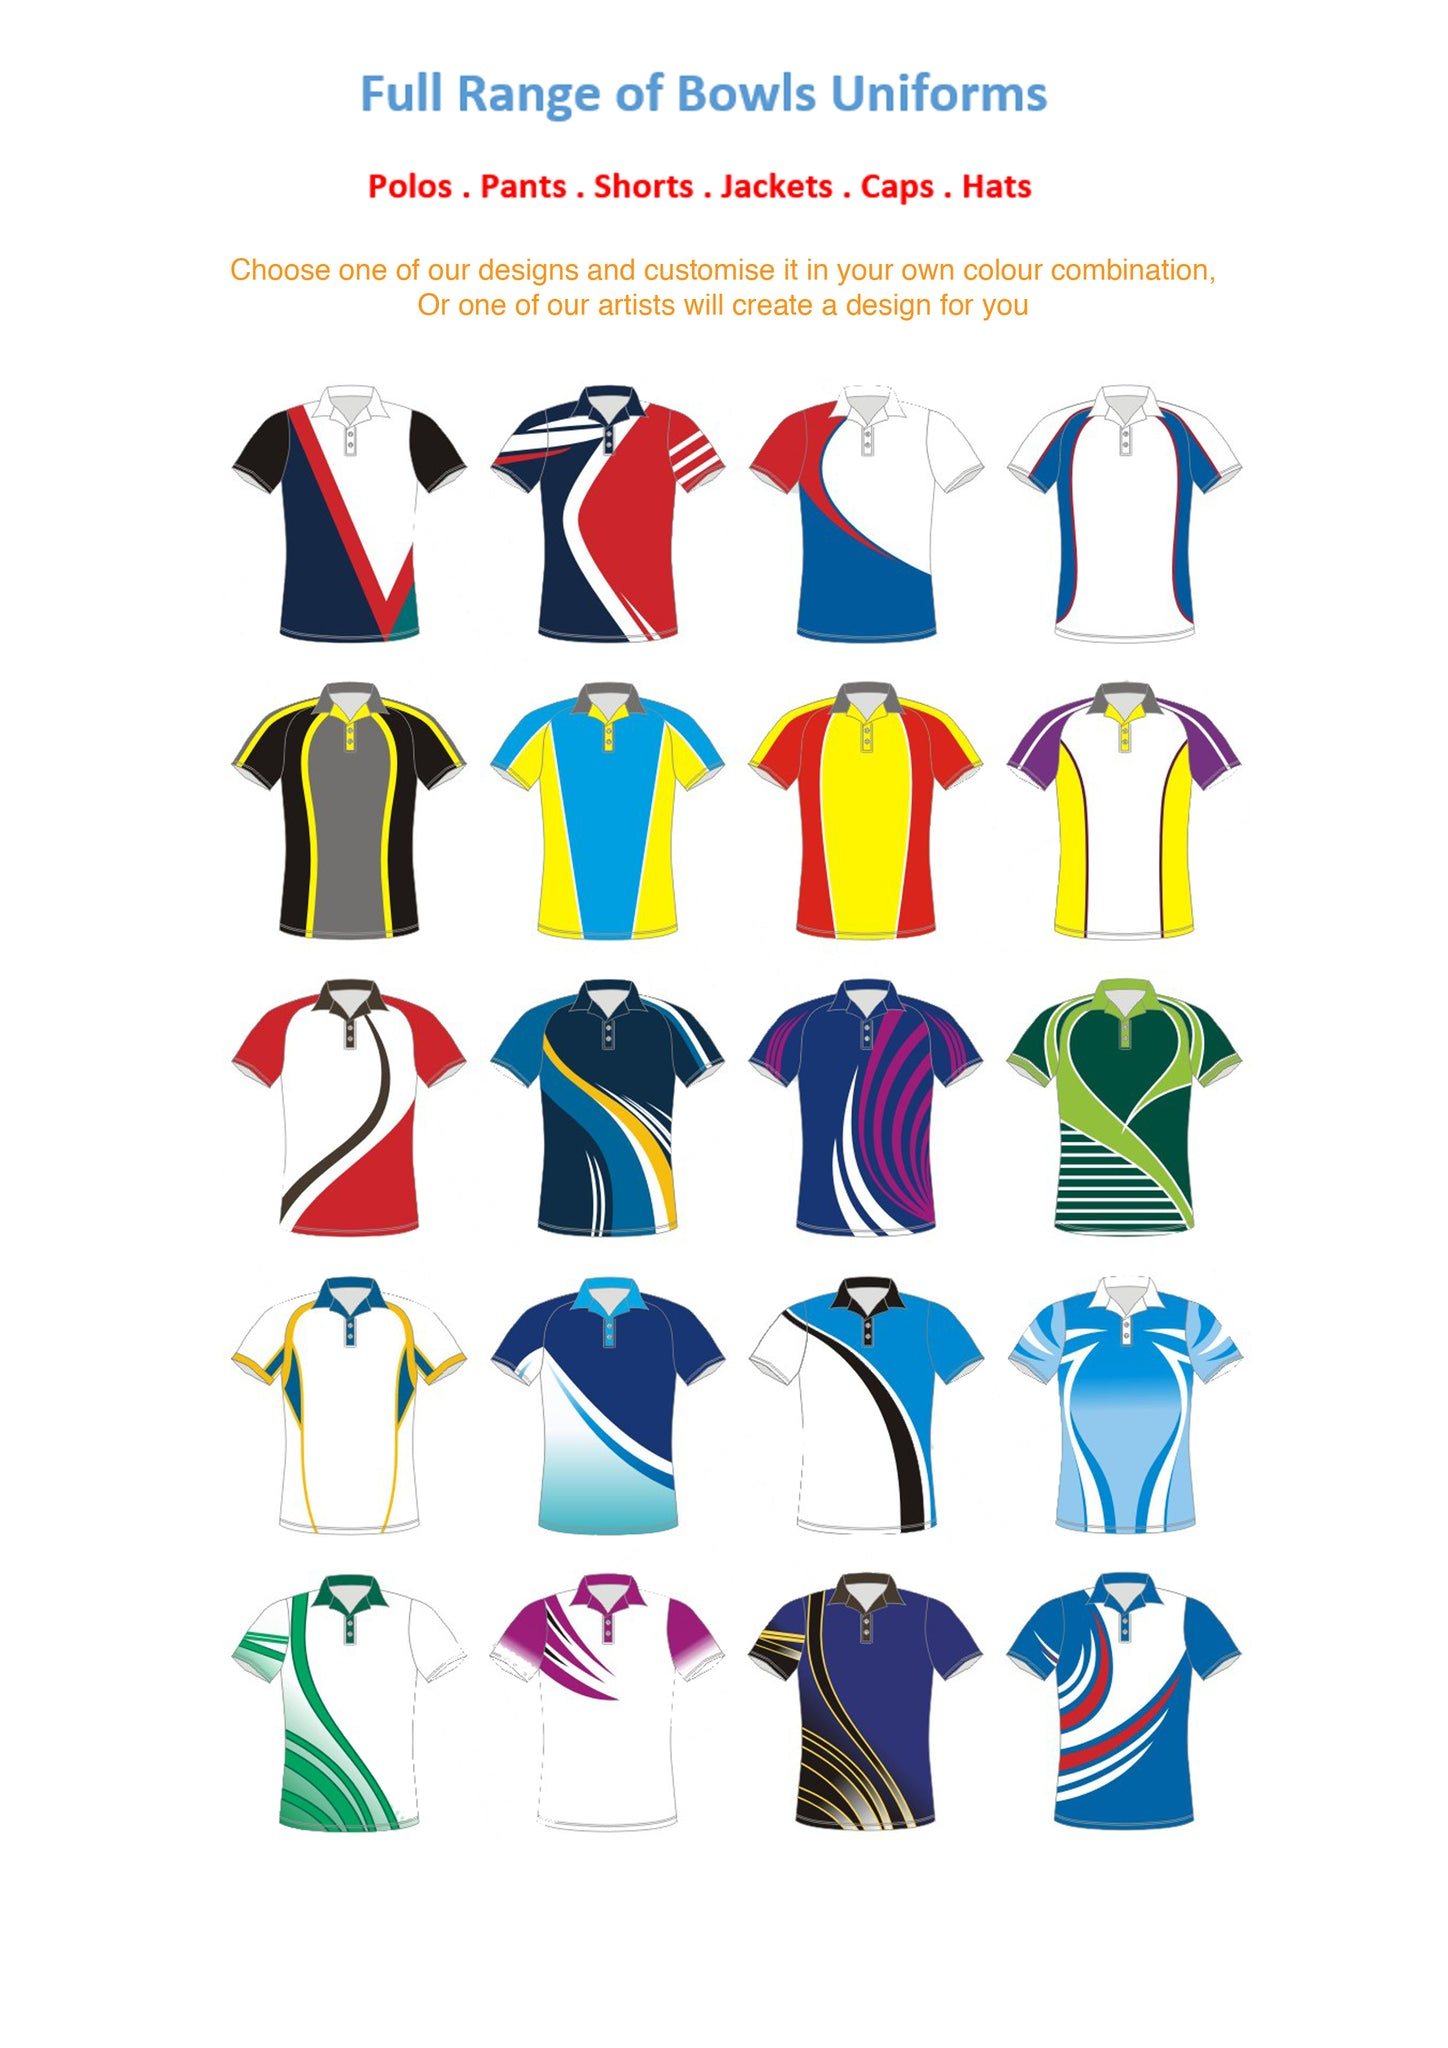 Kiwi Crew custom bowl polo shirts